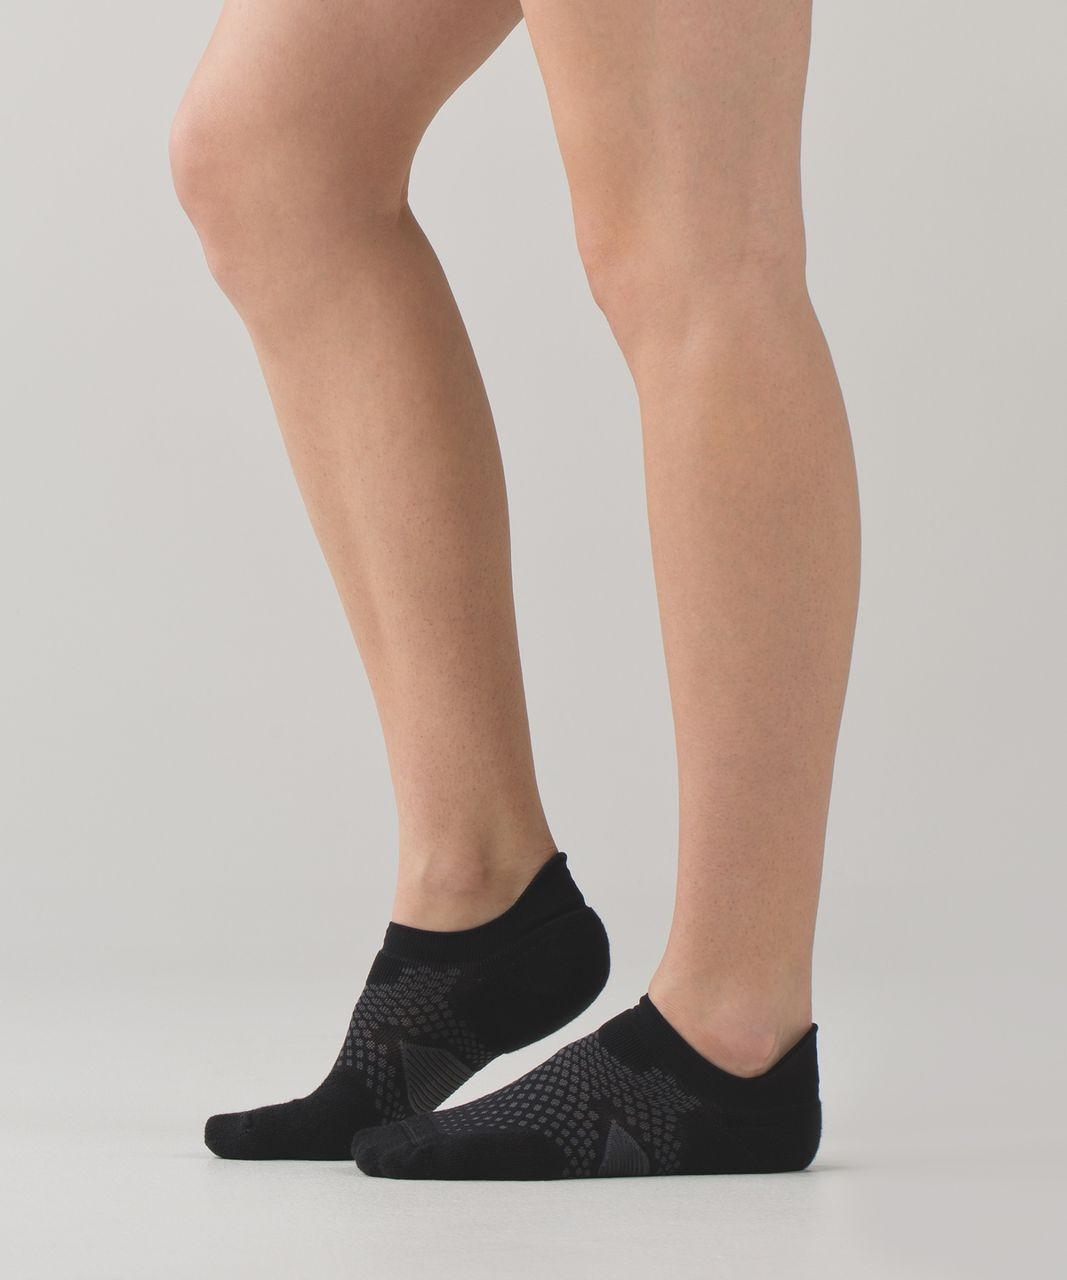 Lululemon High Speed Sock - Black / Silver Spoon